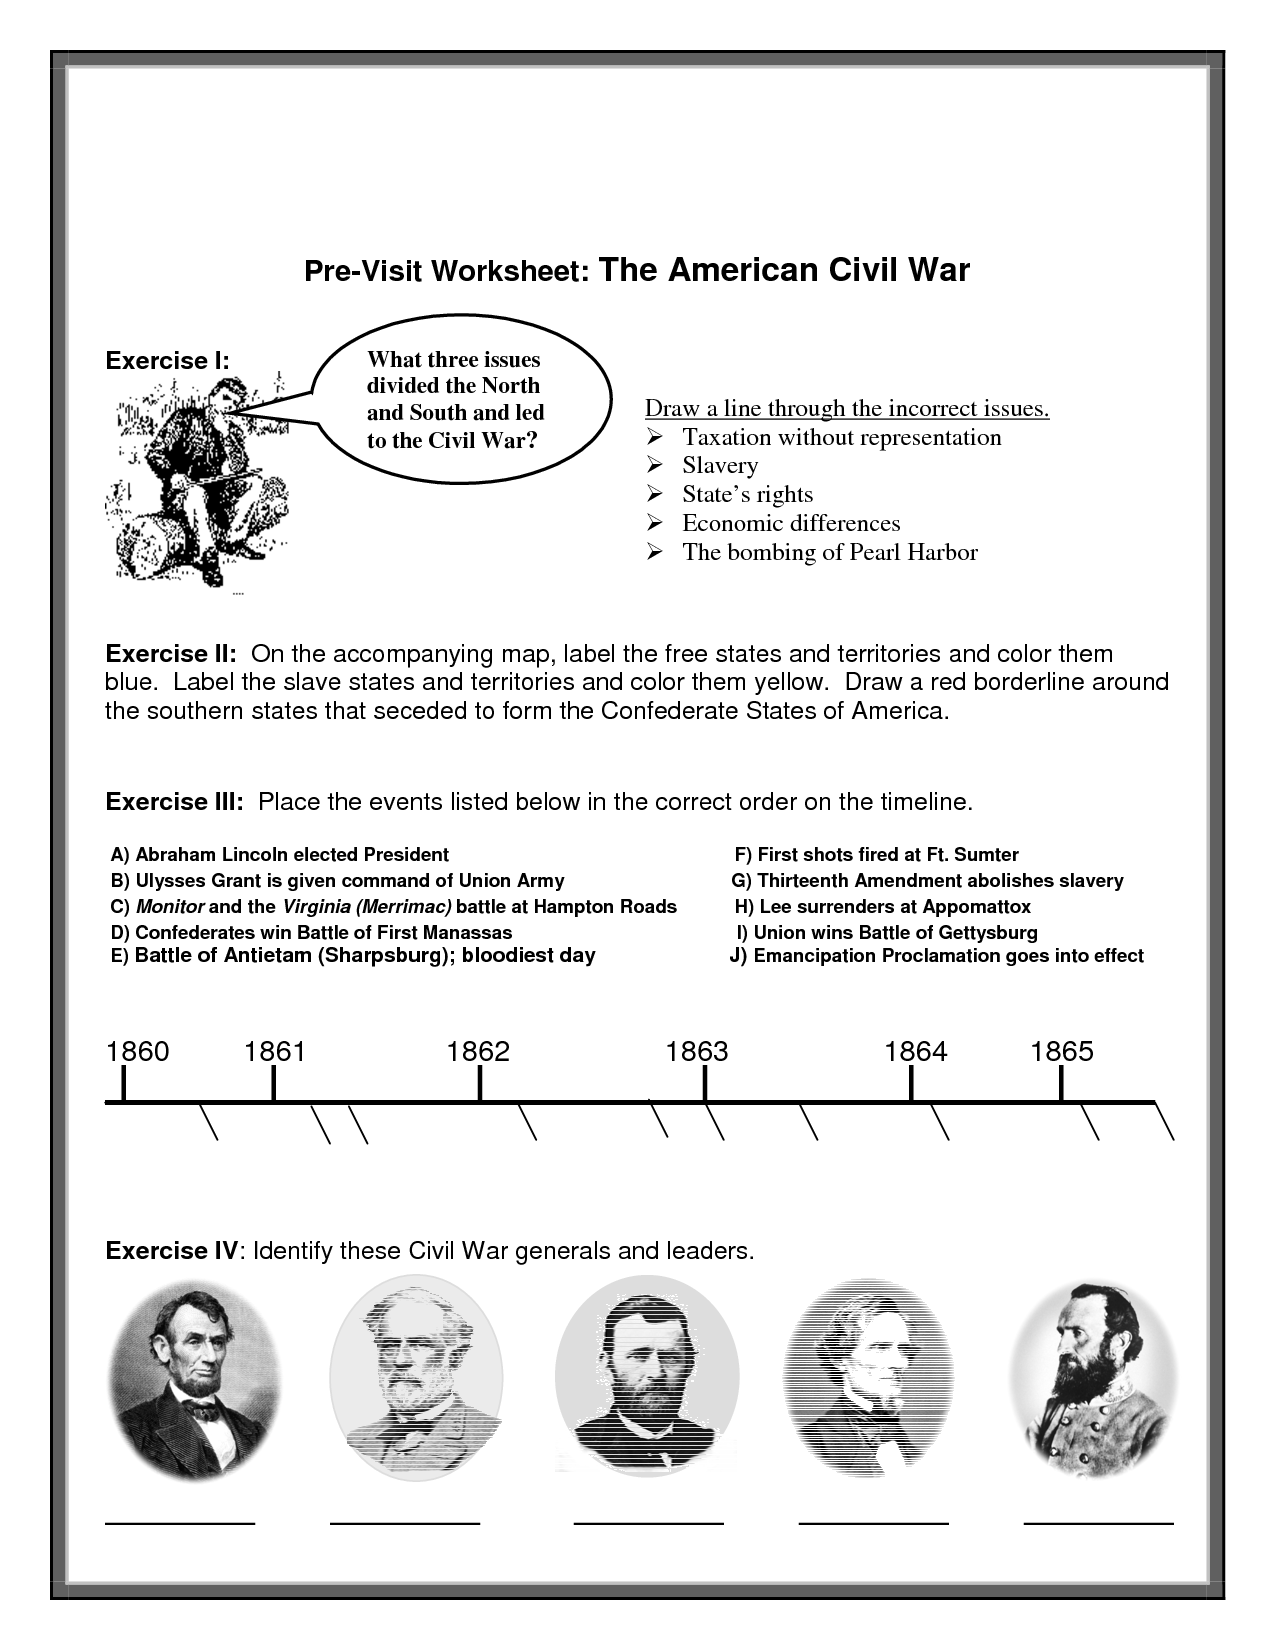 civil war printable worksheets pre visit worksheet the american civil war teacher stuff. Black Bedroom Furniture Sets. Home Design Ideas